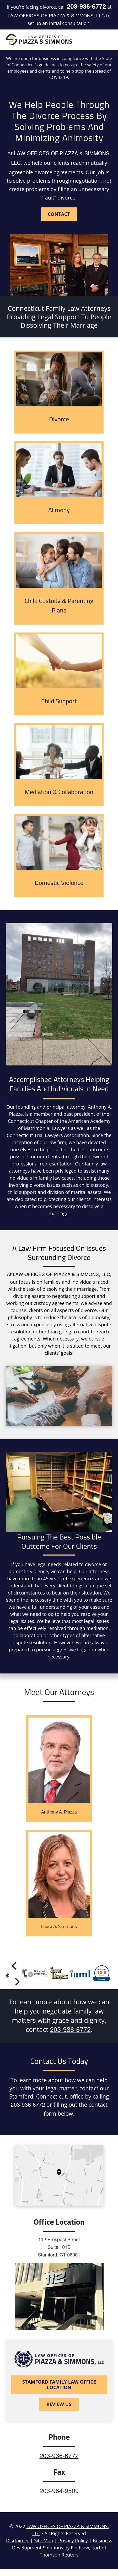 Piazza Simmons Grant LLC - Stamford CT Lawyers